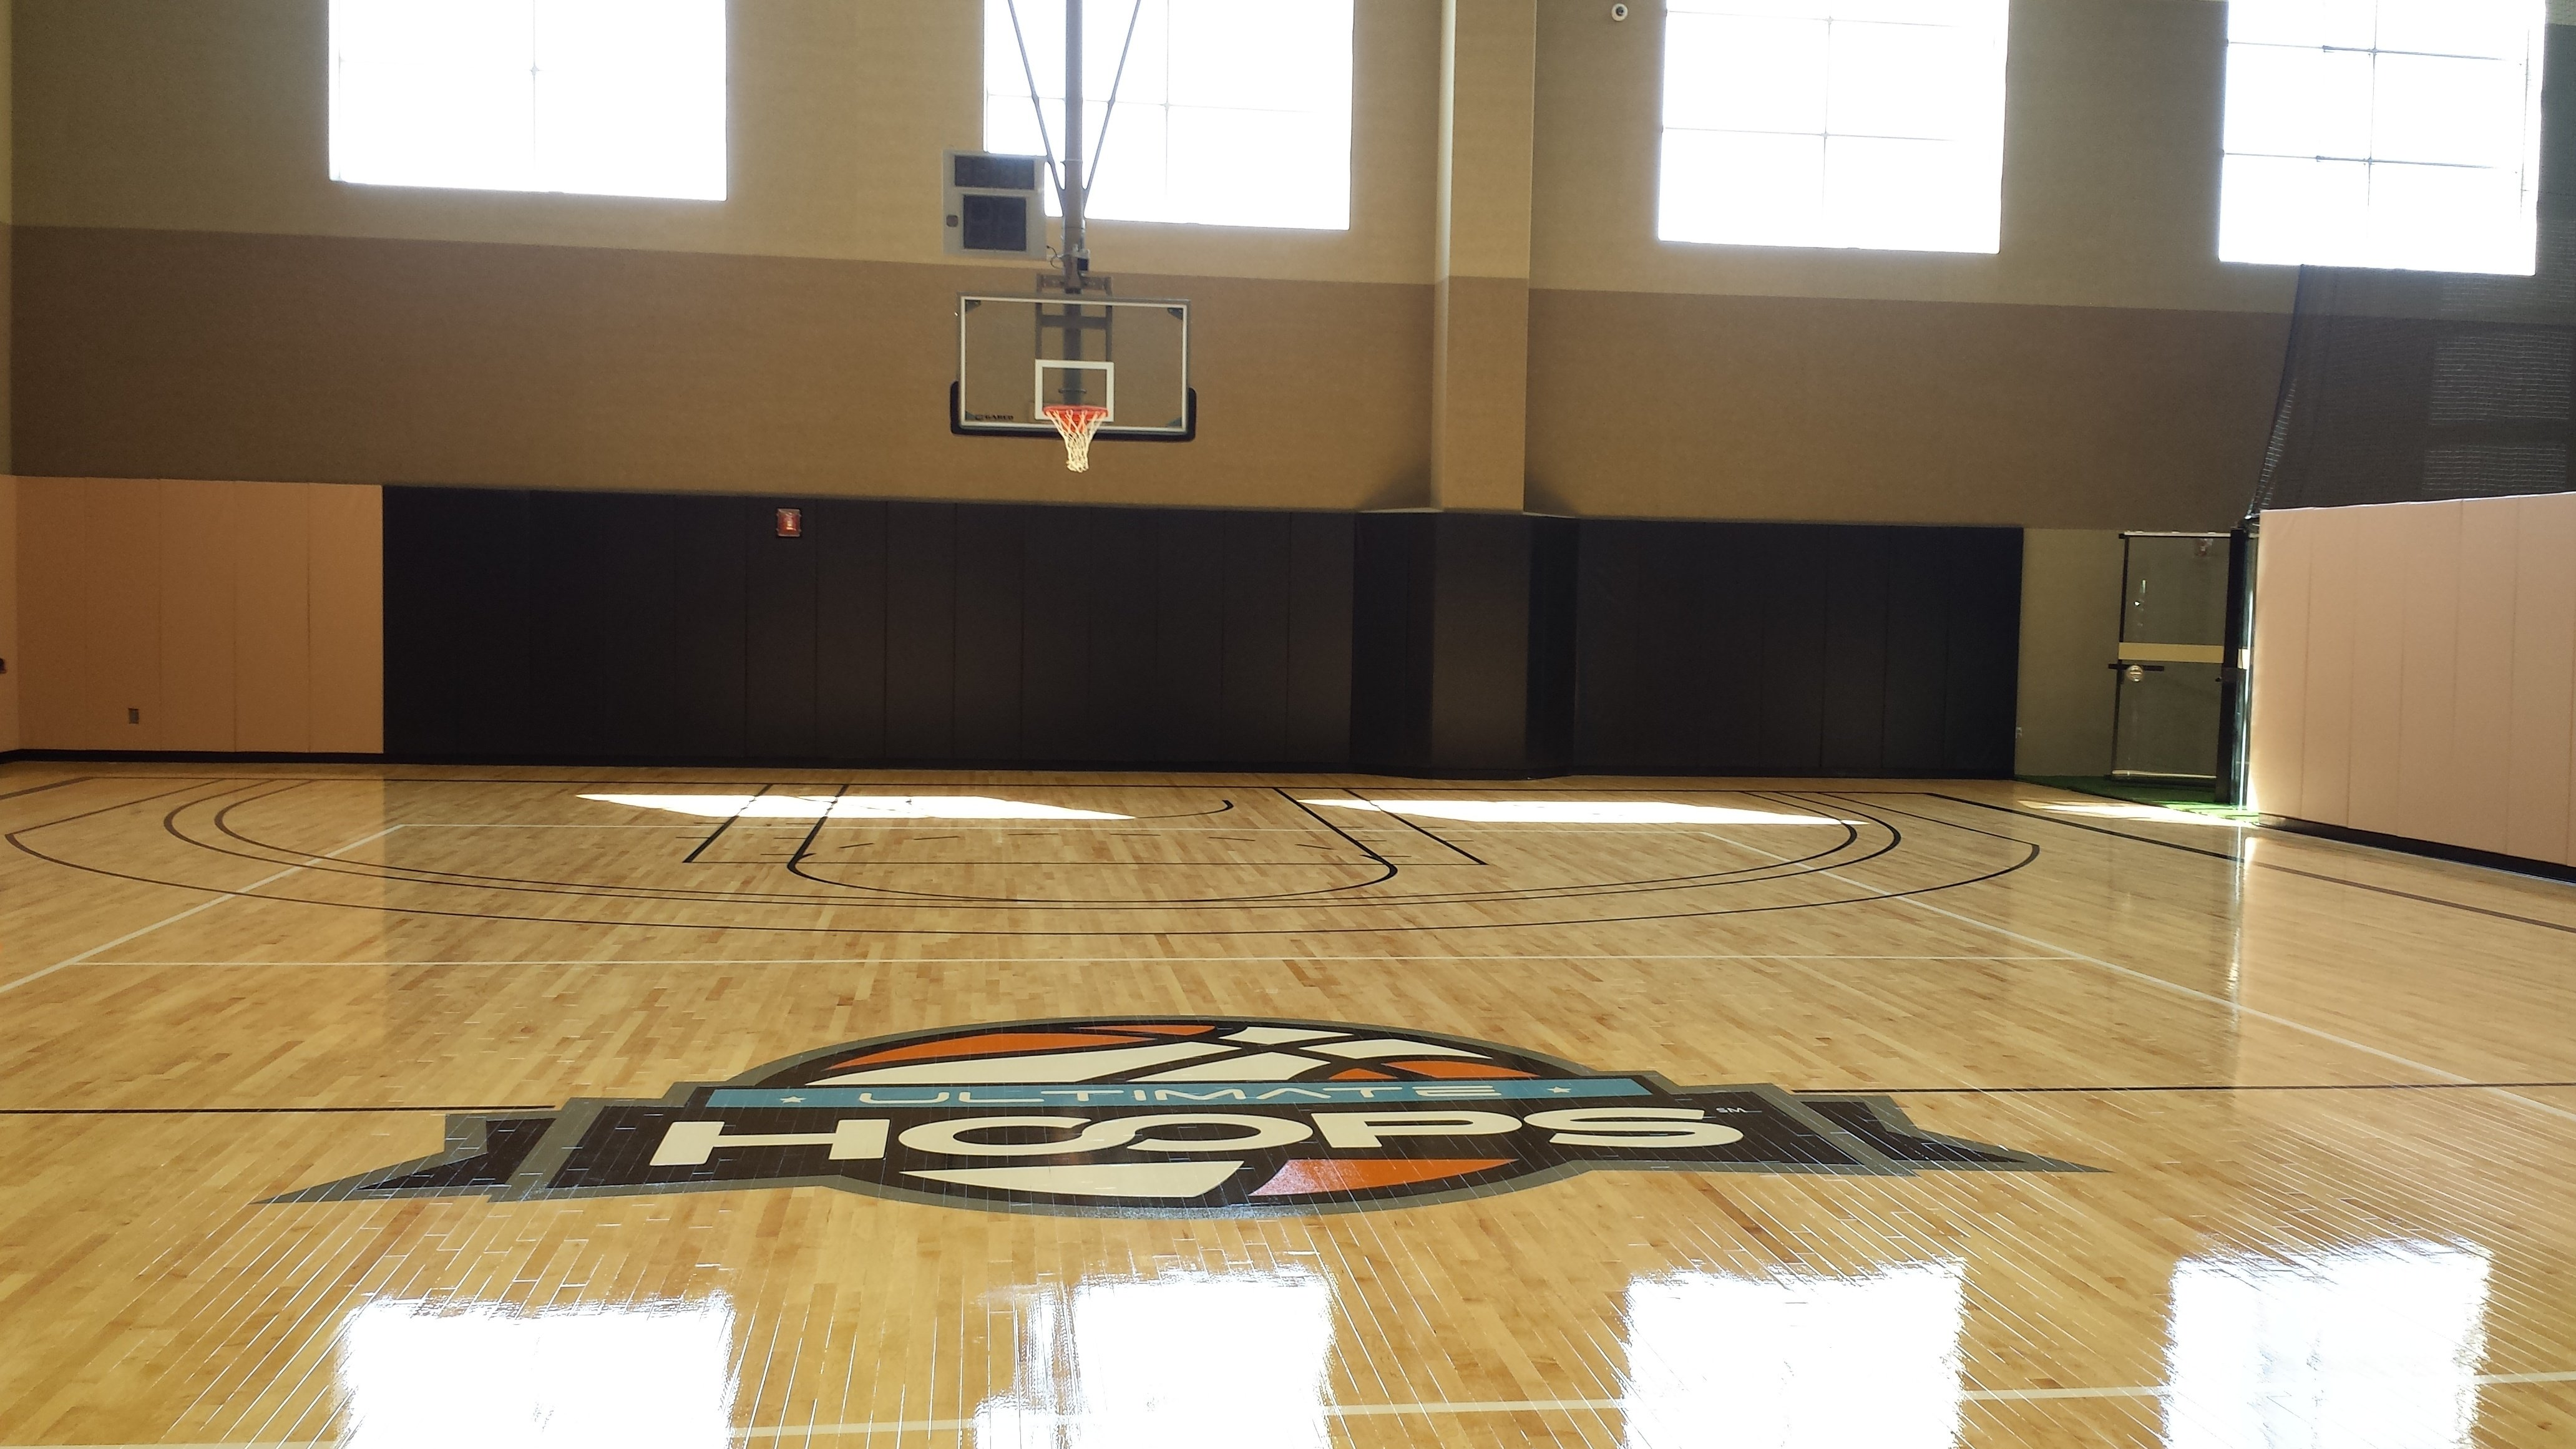 basketball systems custom wall padding for life time. Black Bedroom Furniture Sets. Home Design Ideas